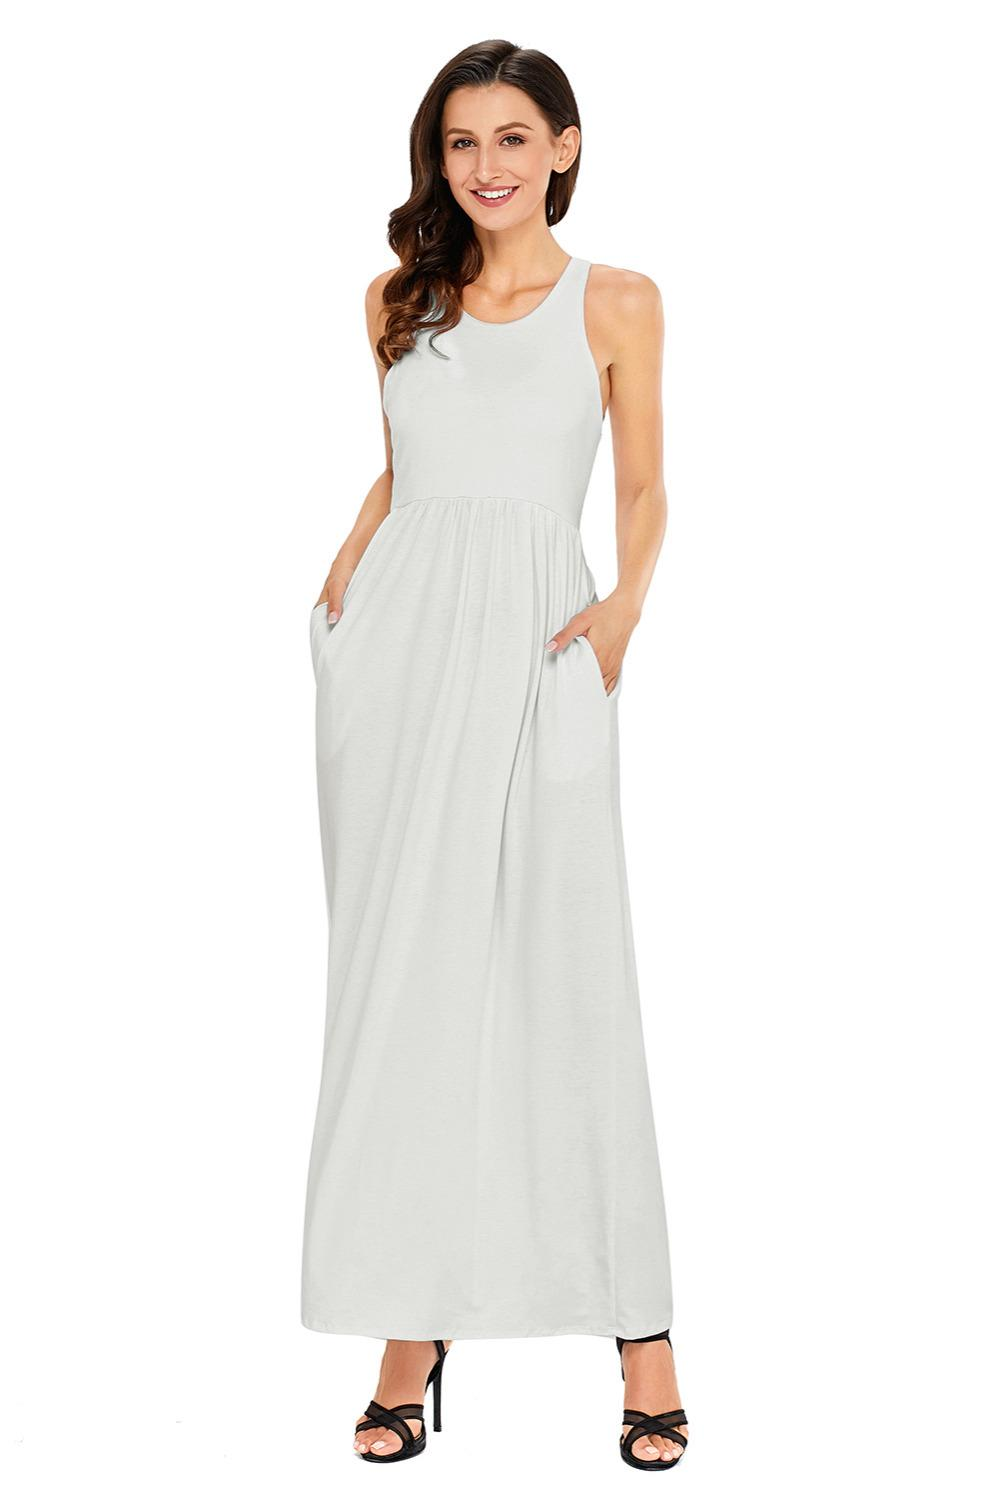 65a43fb952 Sexy Lady Womens Hobo Spring Beach Casual Wear Long Sundress Plus Size White  Racerback Maxi Dress With Pocket S M L Xl Xxl 61647 White Dress Womens  Short ...